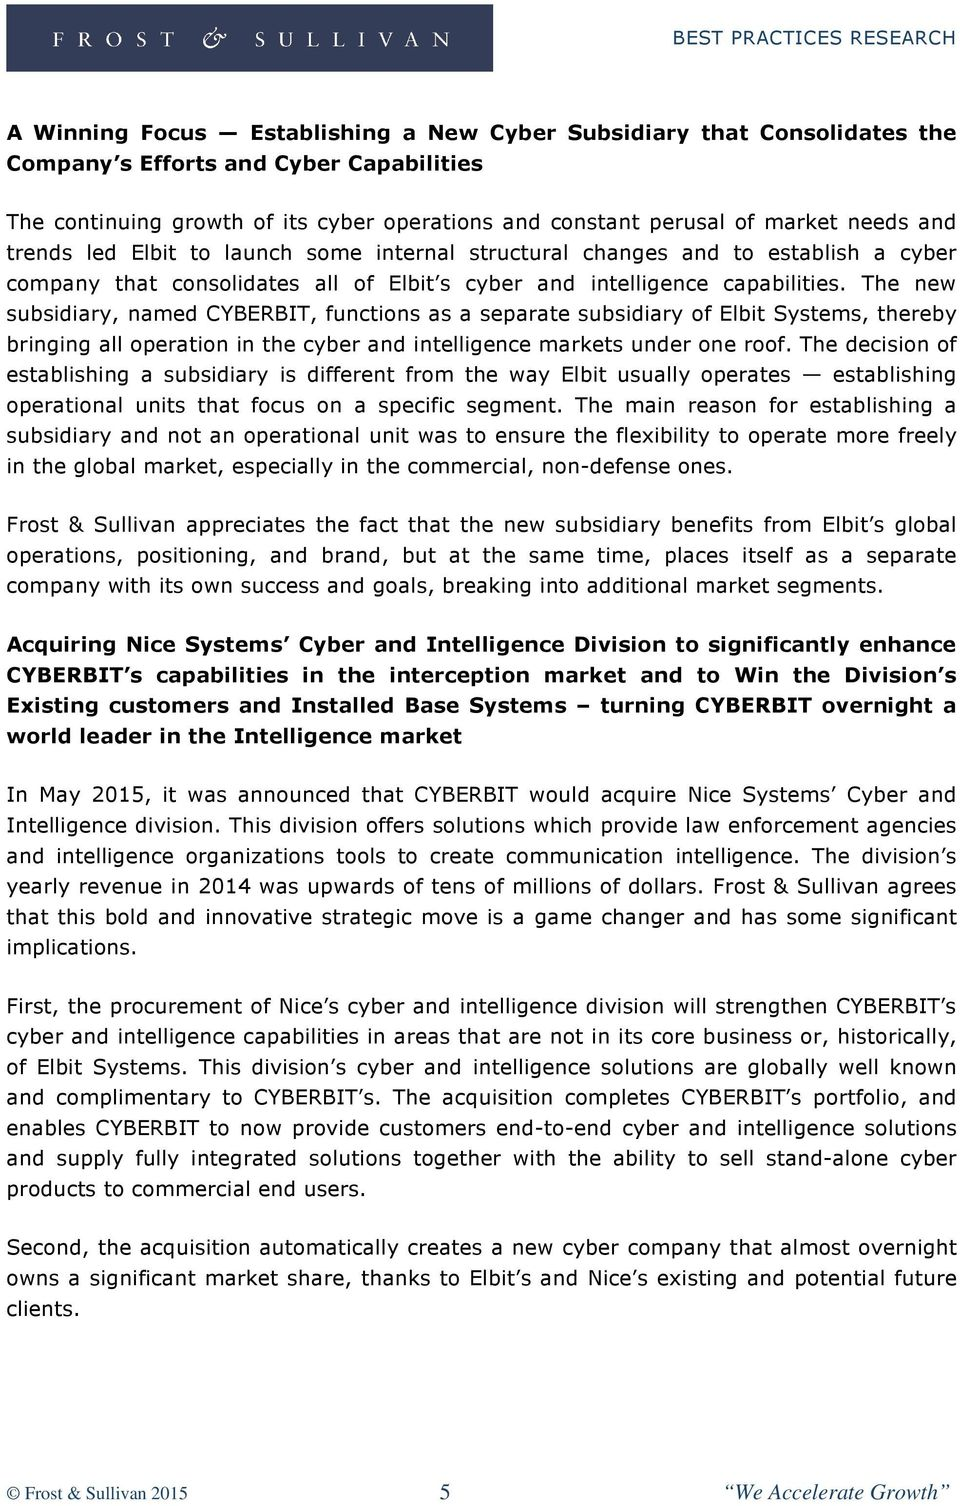 The new subsidiary, named CYBERBIT, functions as a separate subsidiary of Elbit Systems, thereby bringing all operation in the cyber and intelligence markets under one roof.